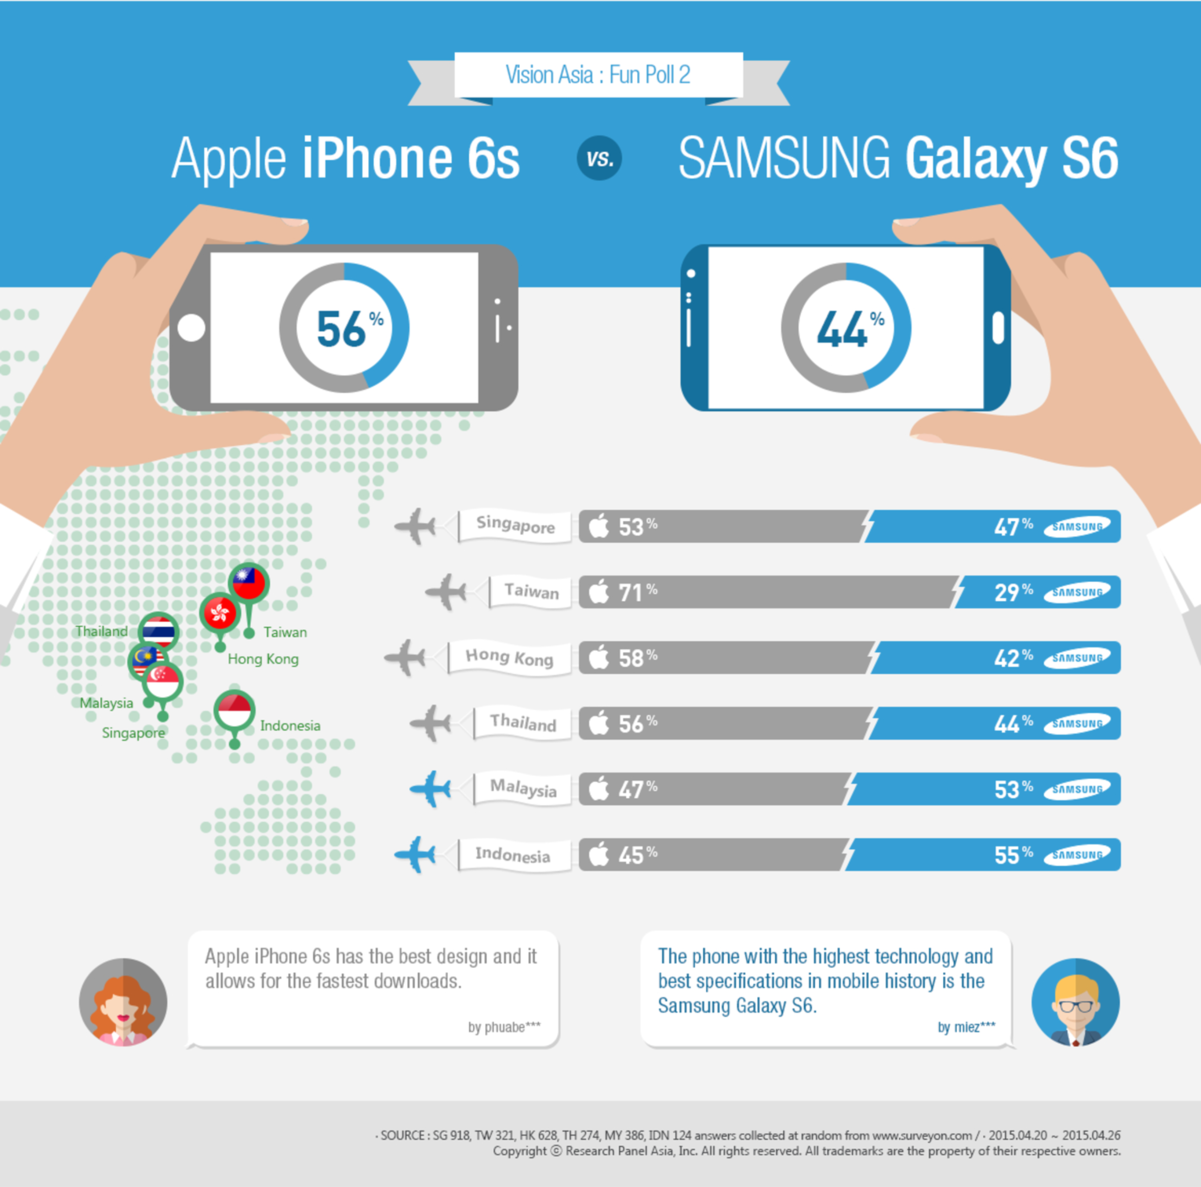 [Infographic] Asia Research Poll: Apple vs. Samsung | EYE ON ASIA